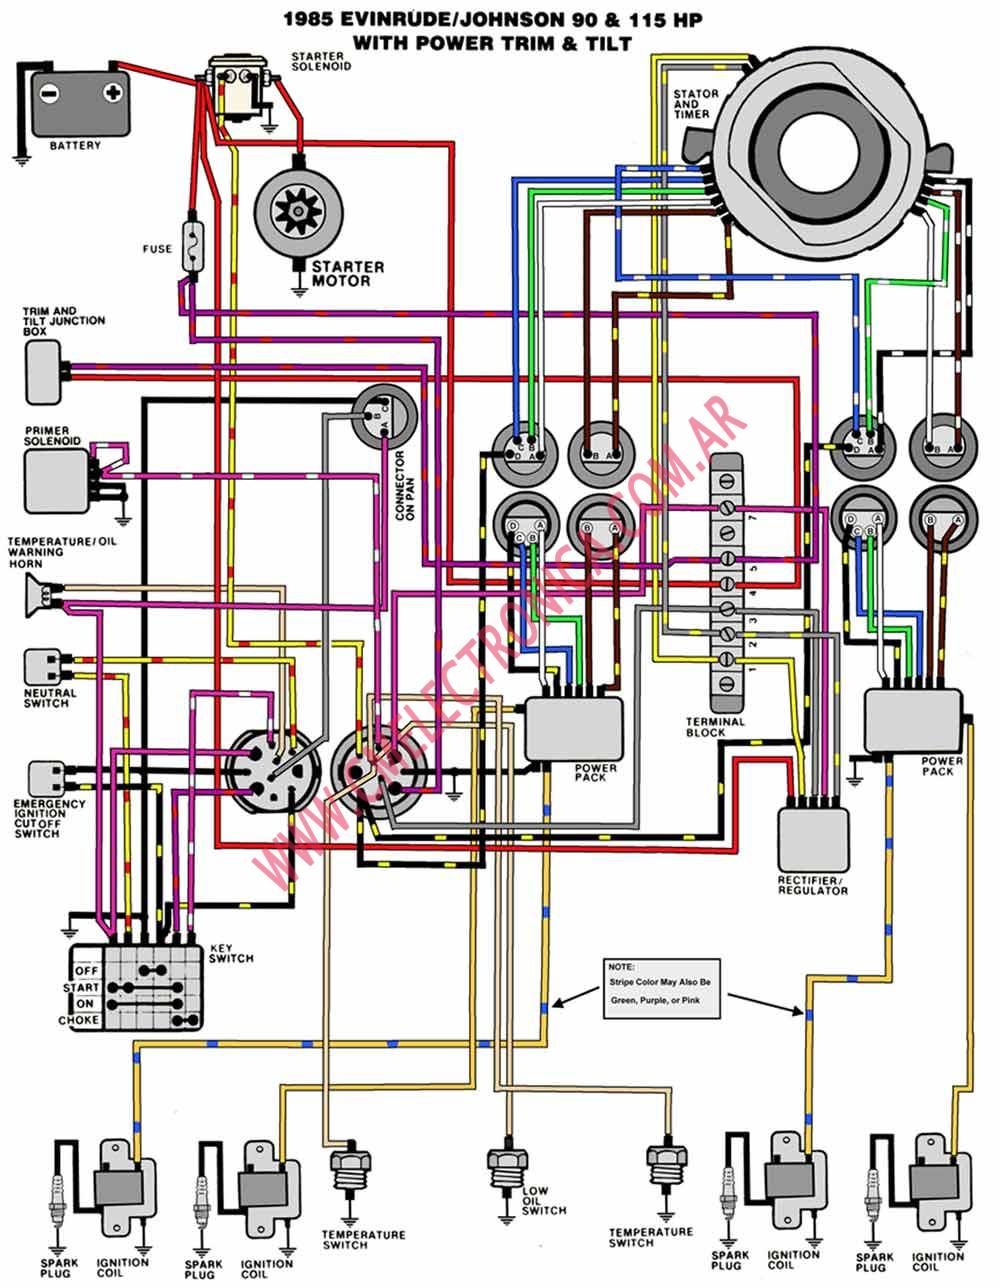 evinrude_johnson 1985_90_115 tnt 2 evinrude wiring diagram efcaviation com 3 wire tilt trim wiring diagram at couponss.co